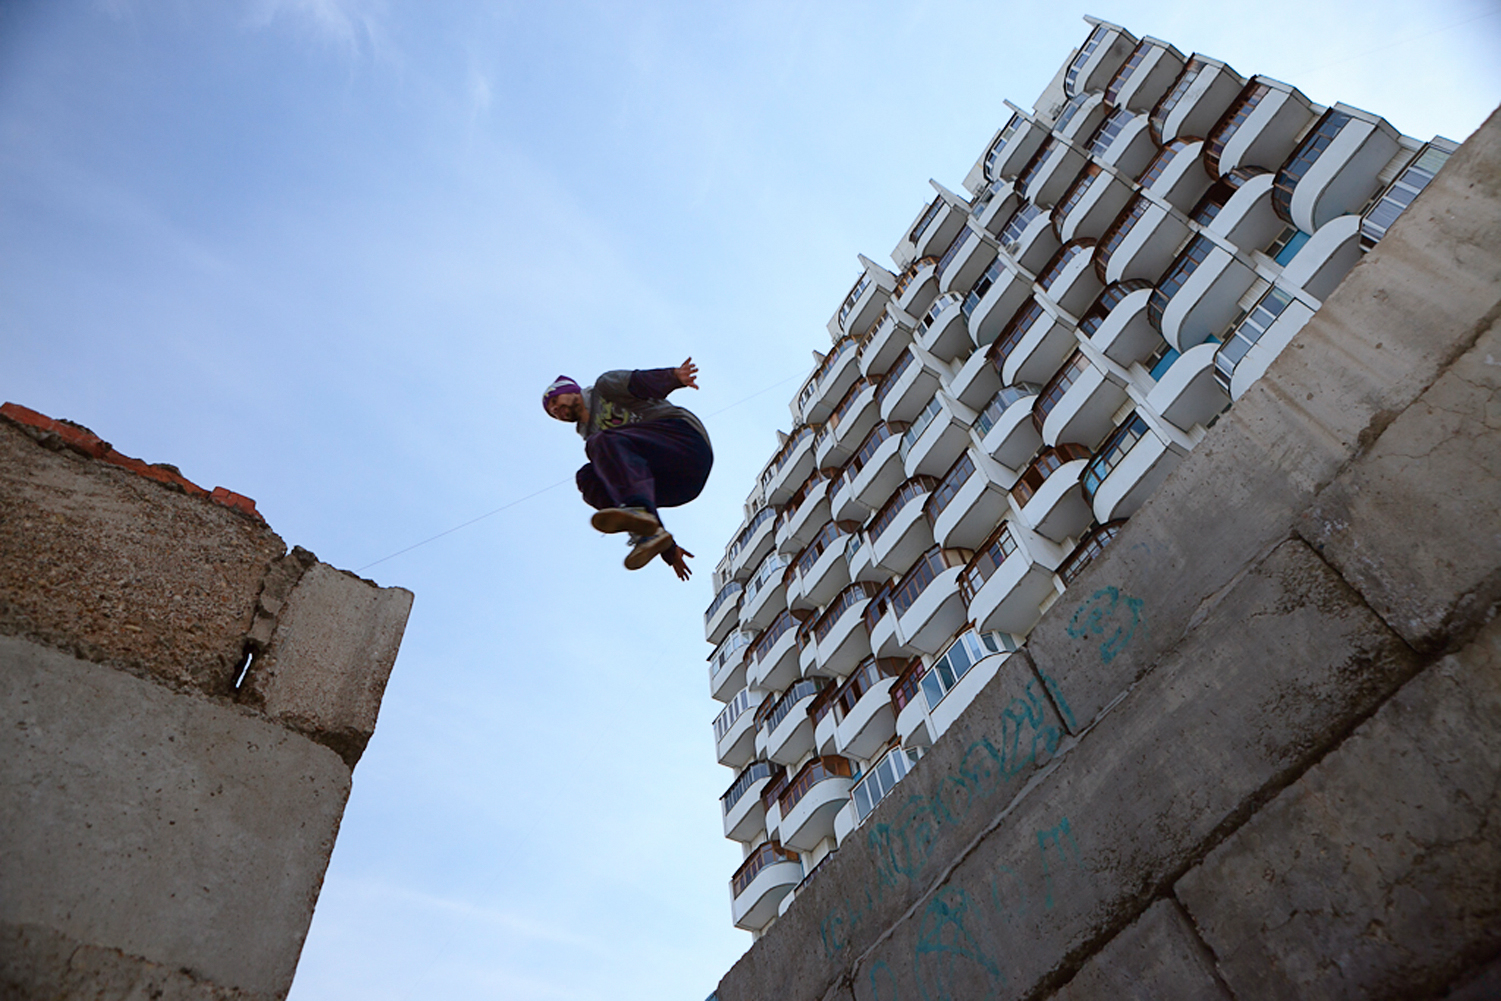 urban flying man, Action, Over, Training, Strength, HQ Photo